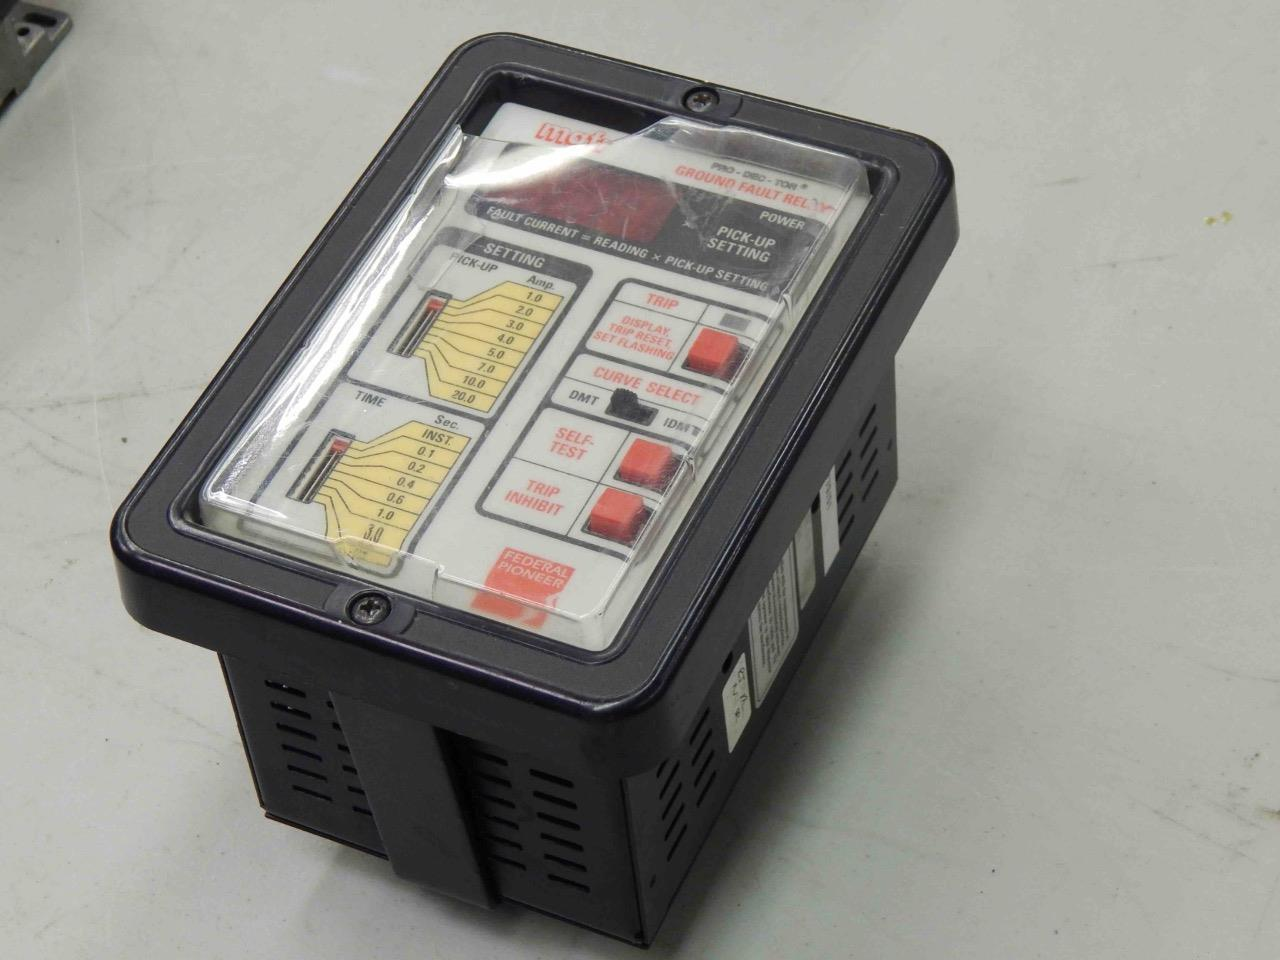 mgfr ground fault relay manual